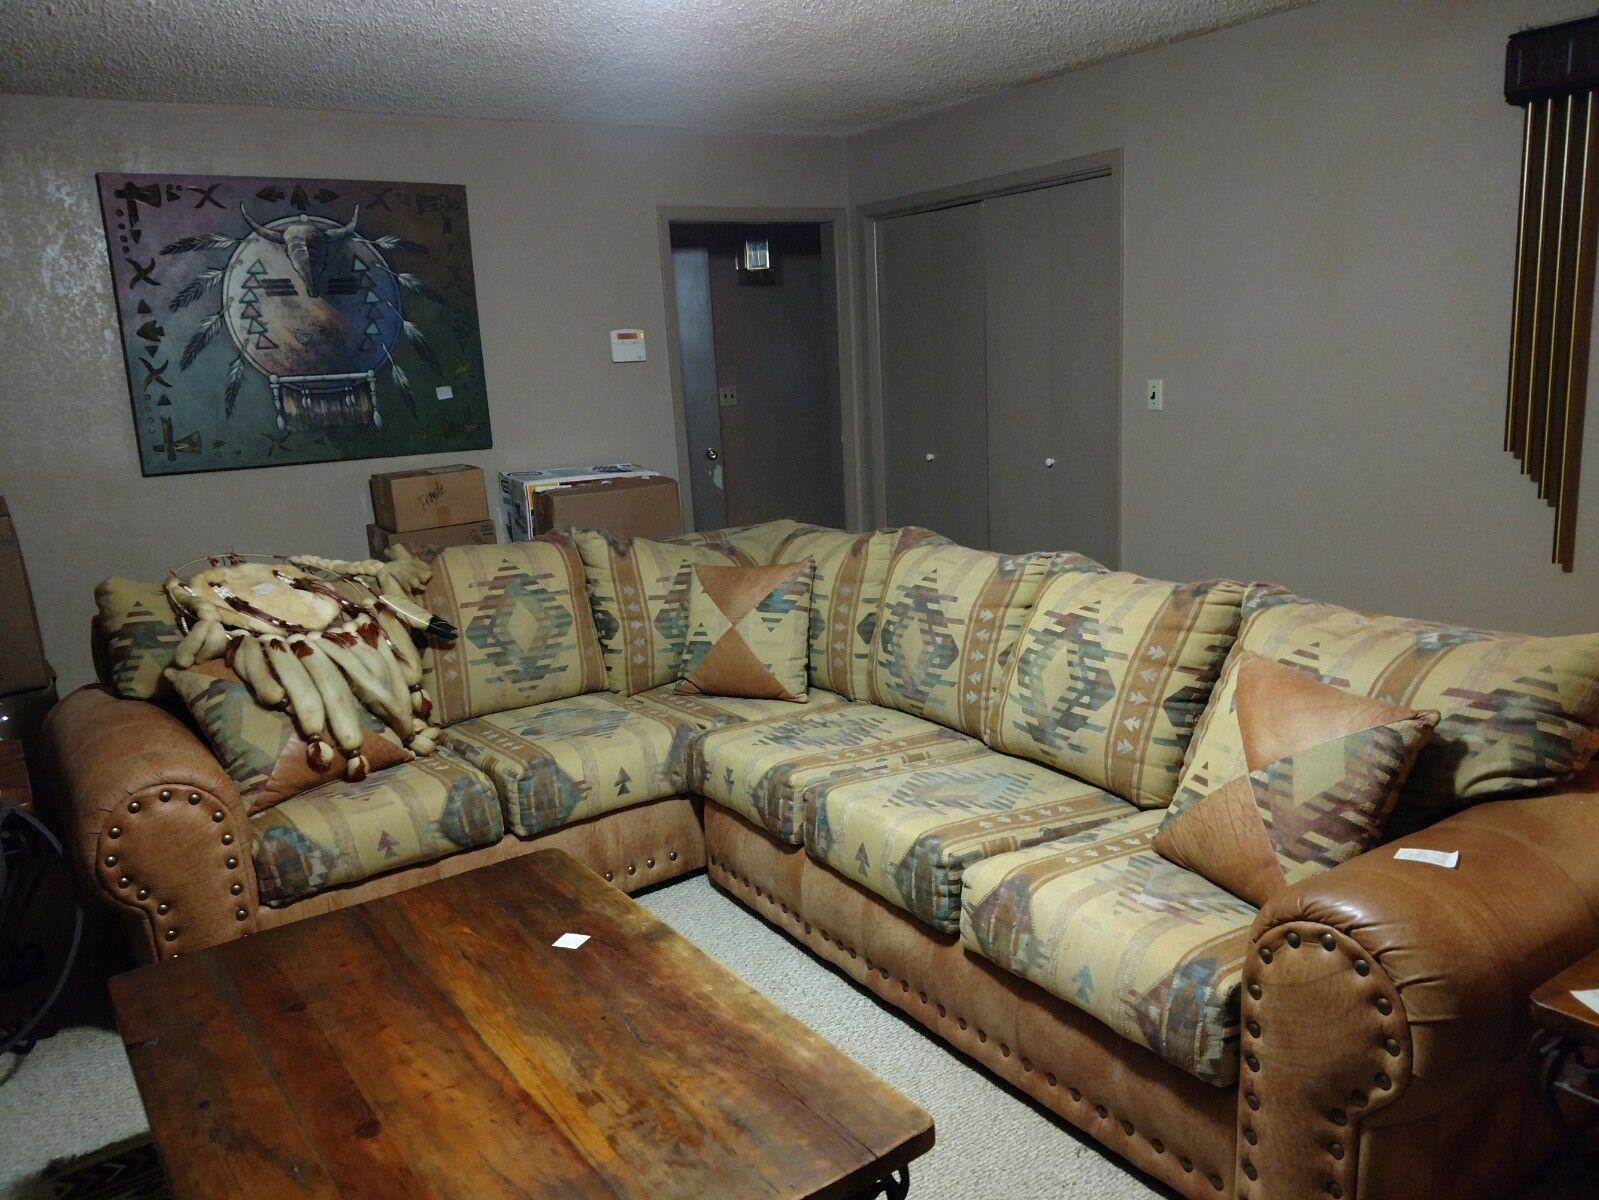 Southwest Sofa Sectional Set Slightly Used Sofa Set Ideas Of Sofa Set Sofa Sofaset Southwest Sofa Sectional With Images Sofa Set Sectional Sofa Sectional Couch